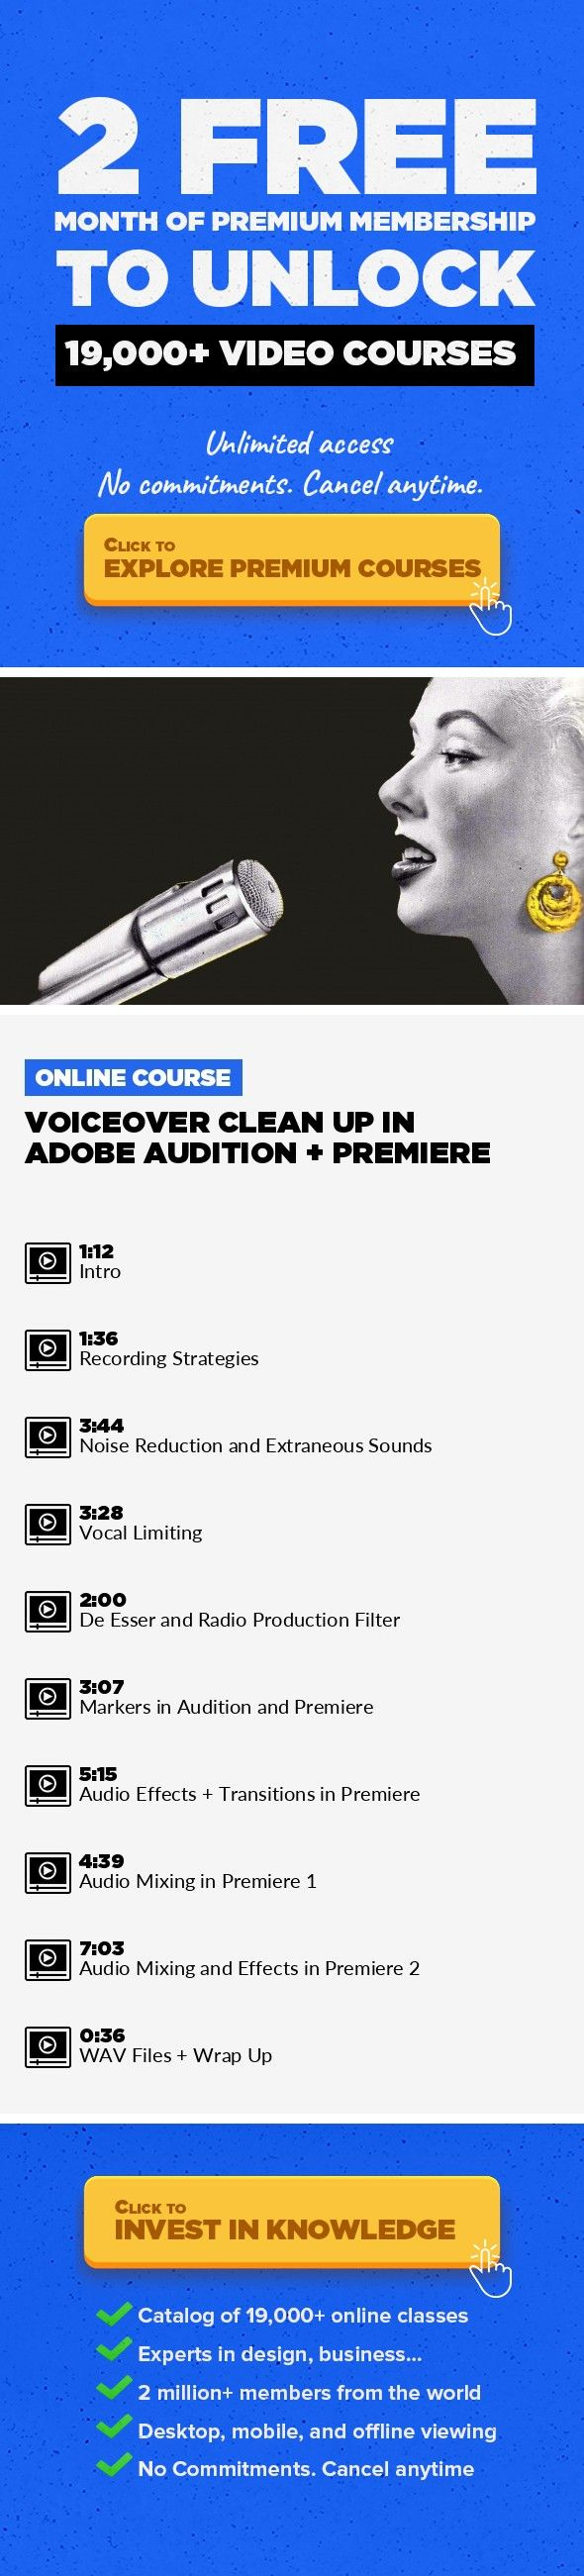 Voiceover Clean Up In Adobe Audition + Premiere Audio Post